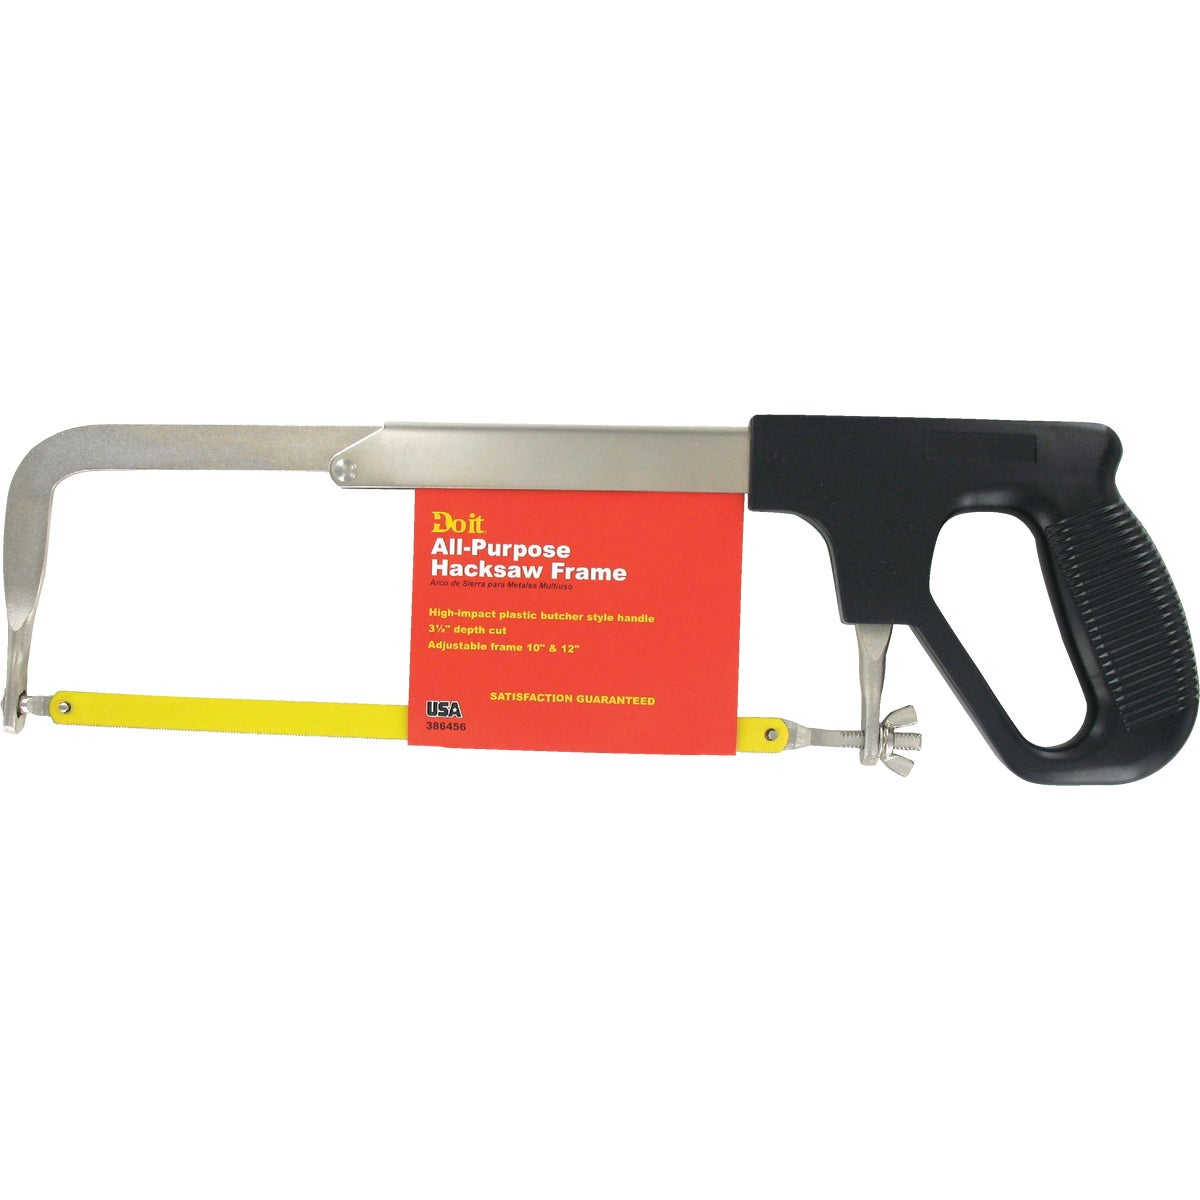 Do it 12 In. All-Purpose Hacksaw